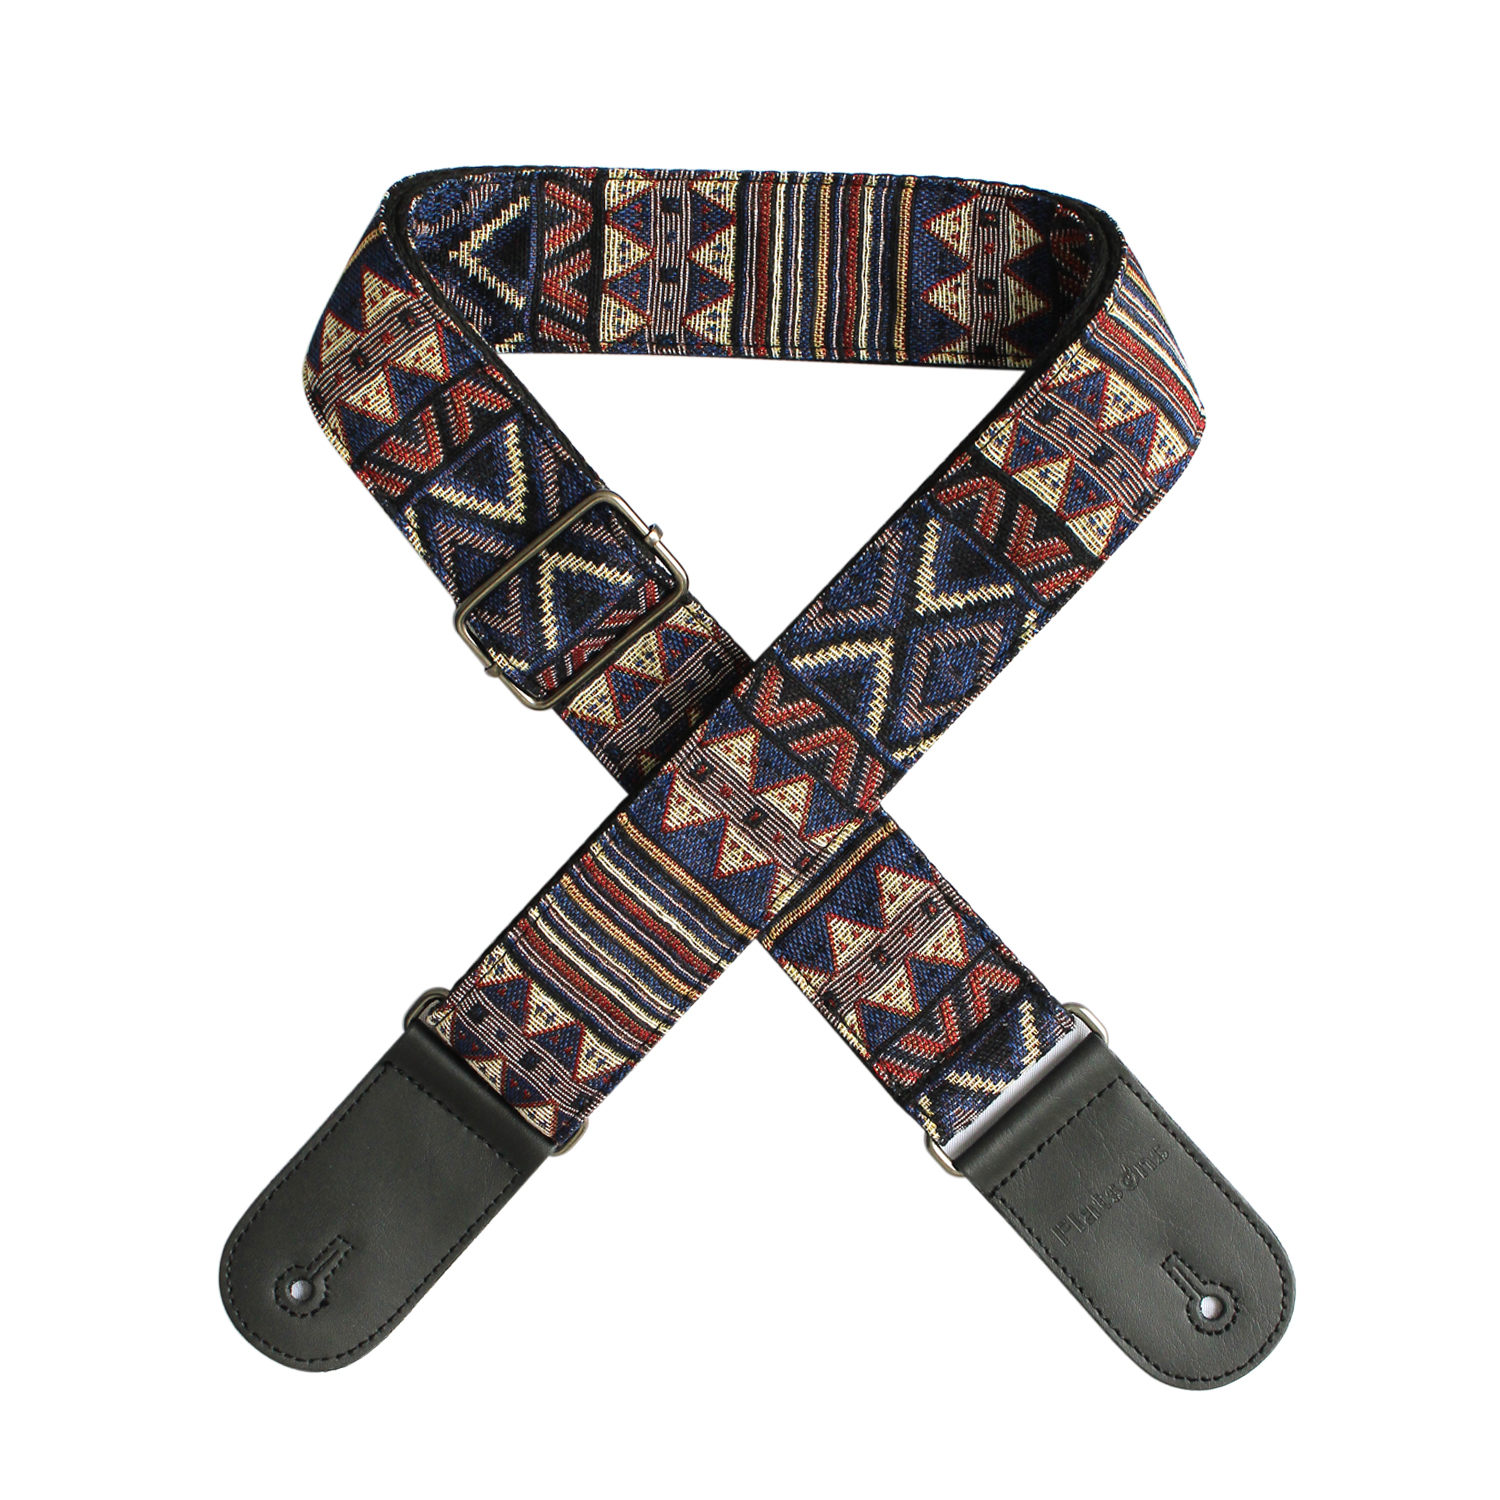 Flanger Vintage National Style Acoustic Electric Guitar Strap Jacquard Embroidery Strap F-S3